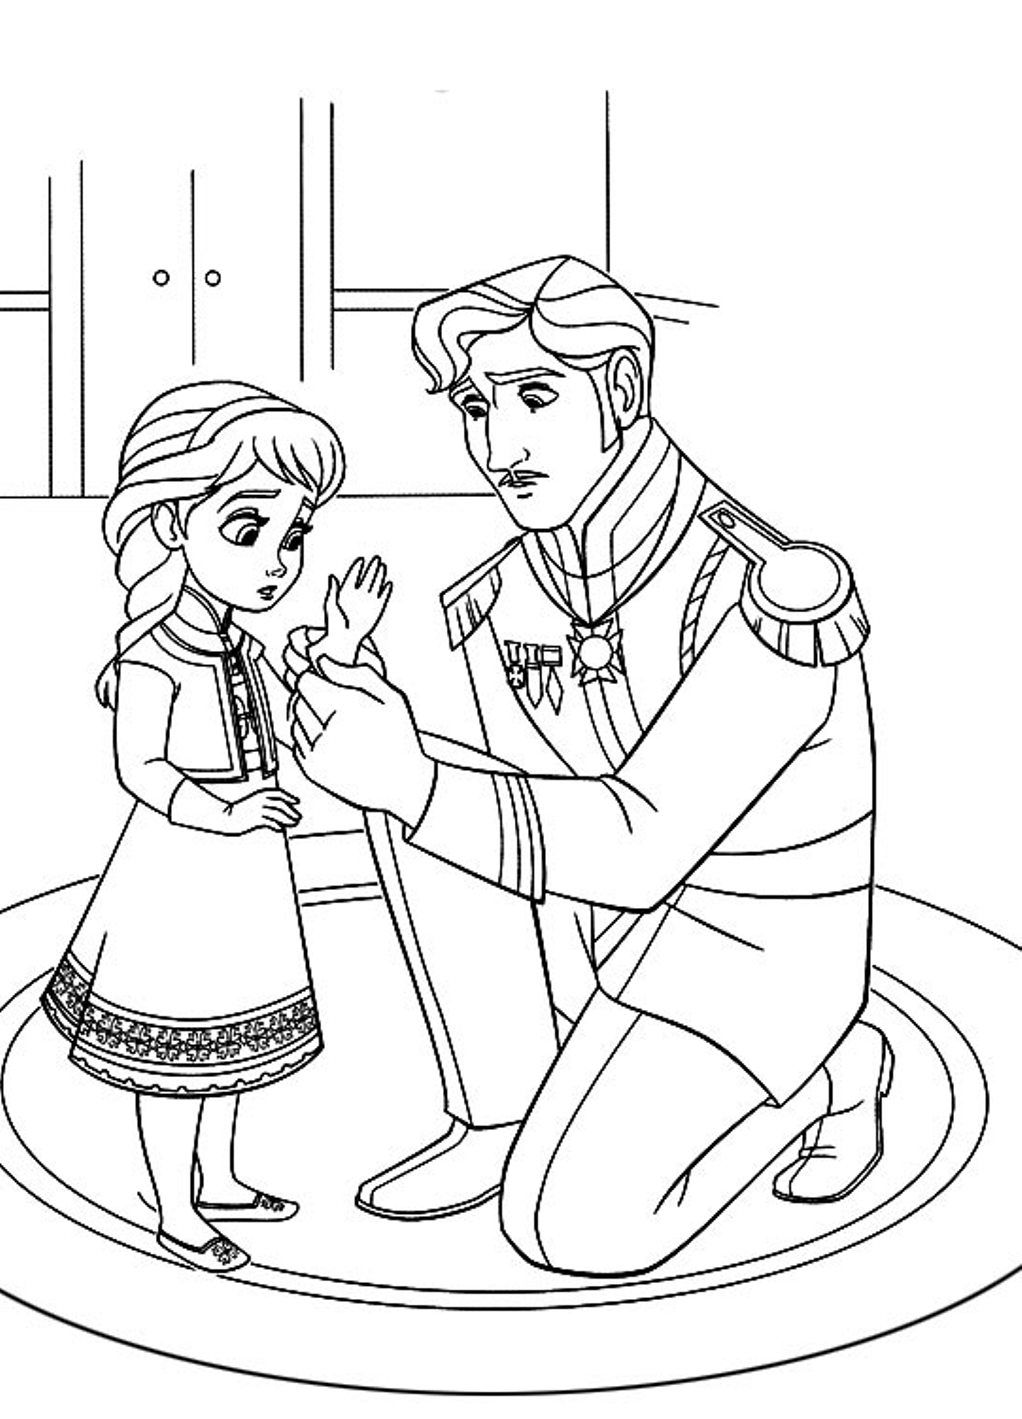 frozen coloring new frozen 2 coloring pages with elsa in 2020 frozen coloring